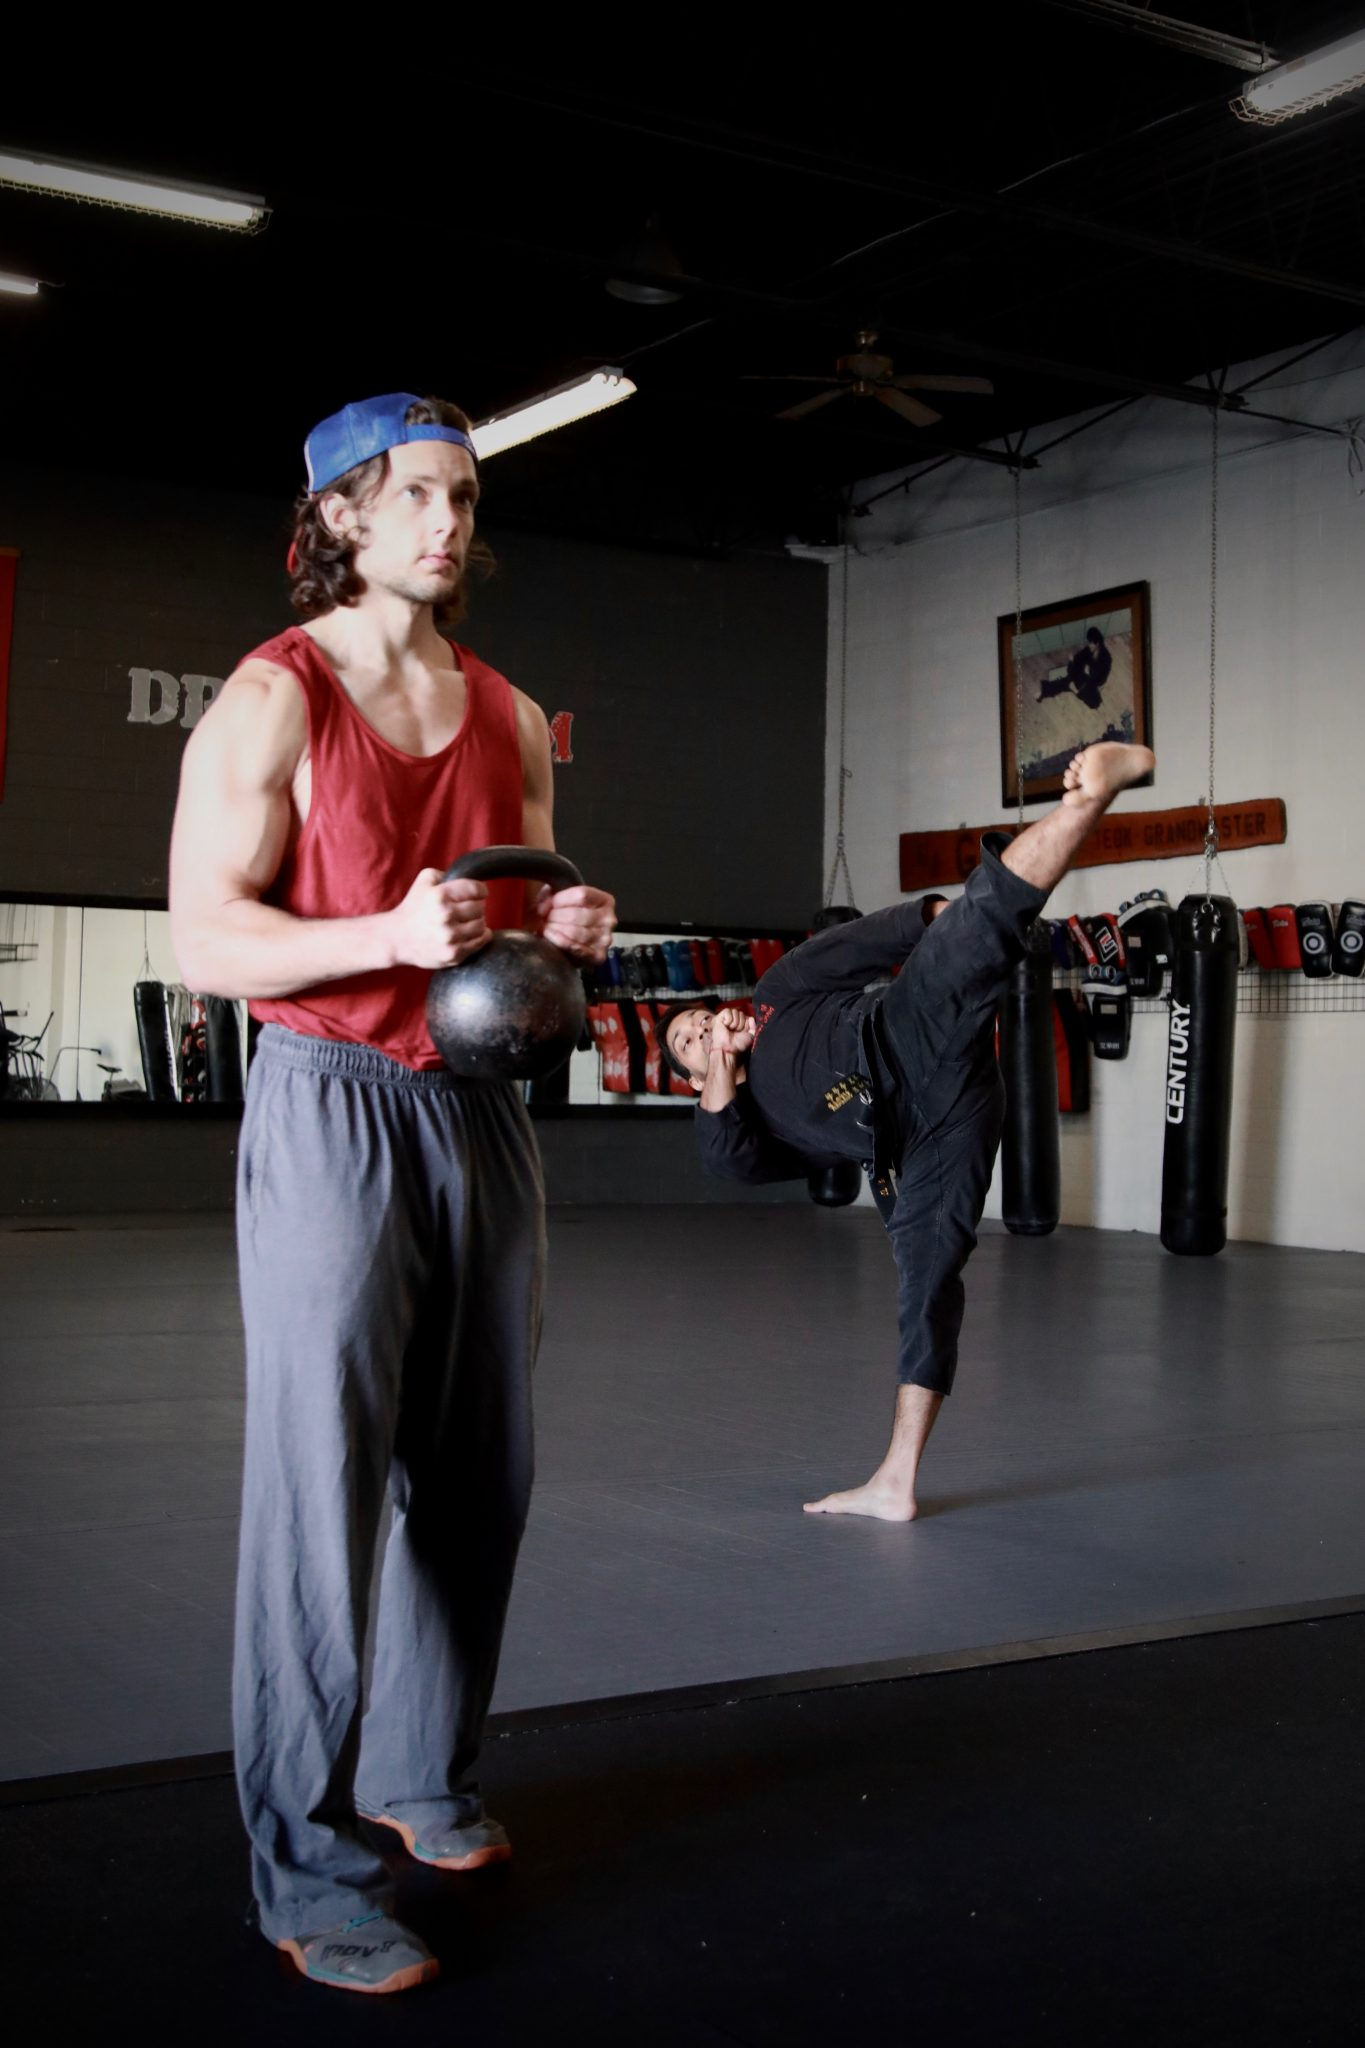 the super happy fun time kettlebell workout